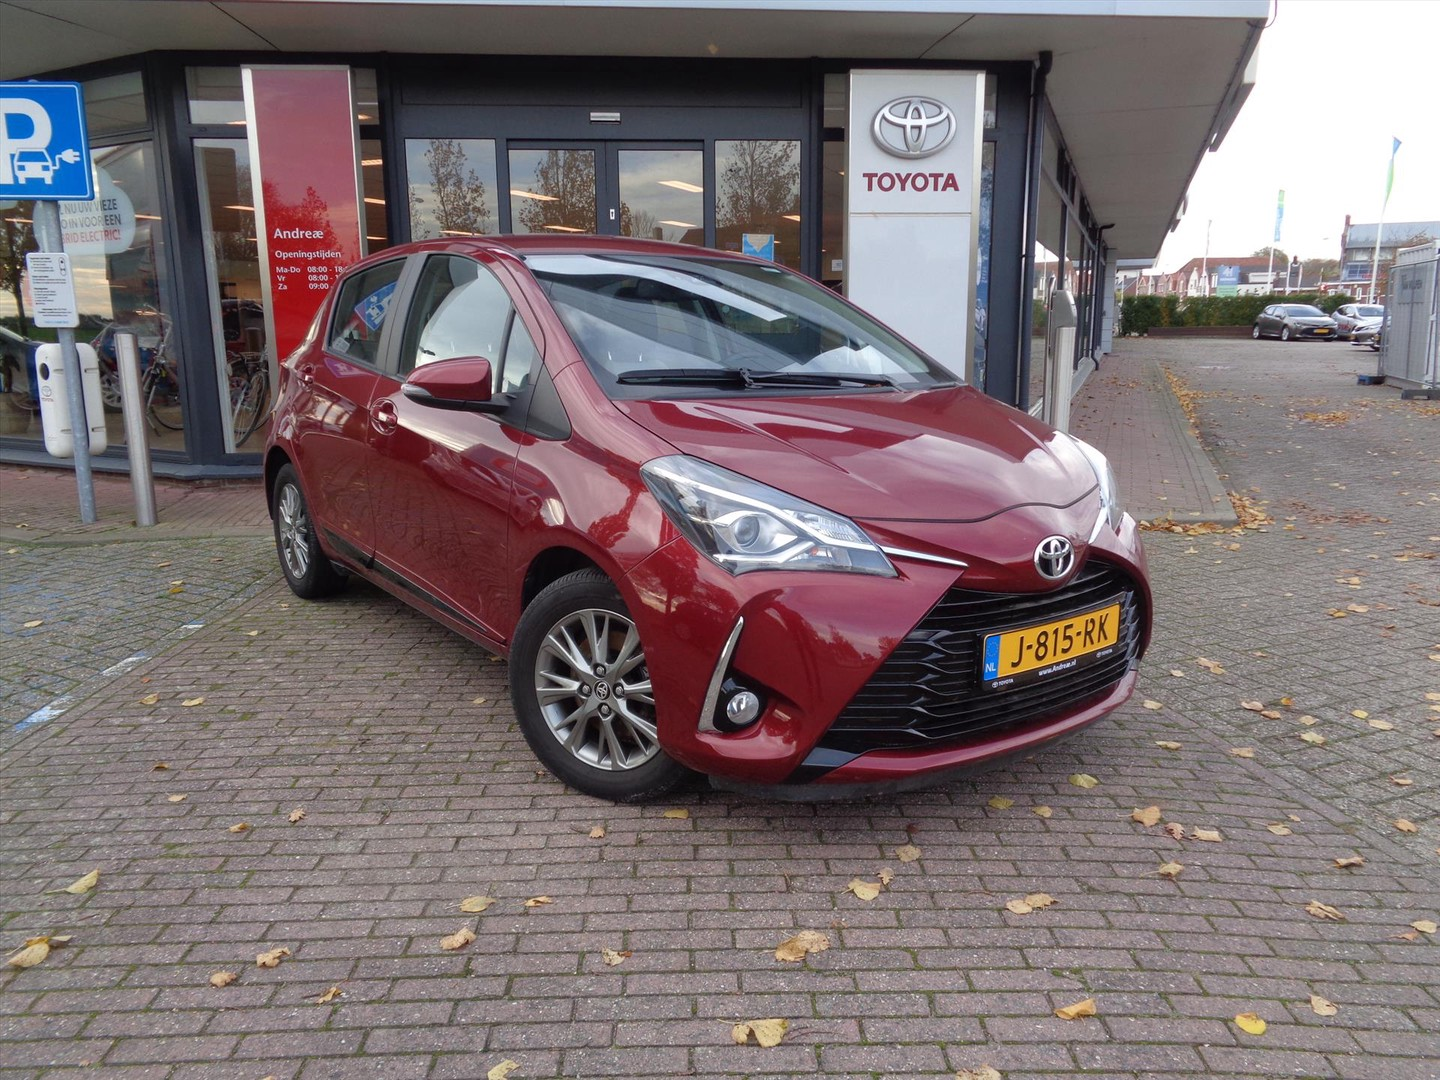 Toyota Yaris 1.5 vvt-i 111pk 5d design red